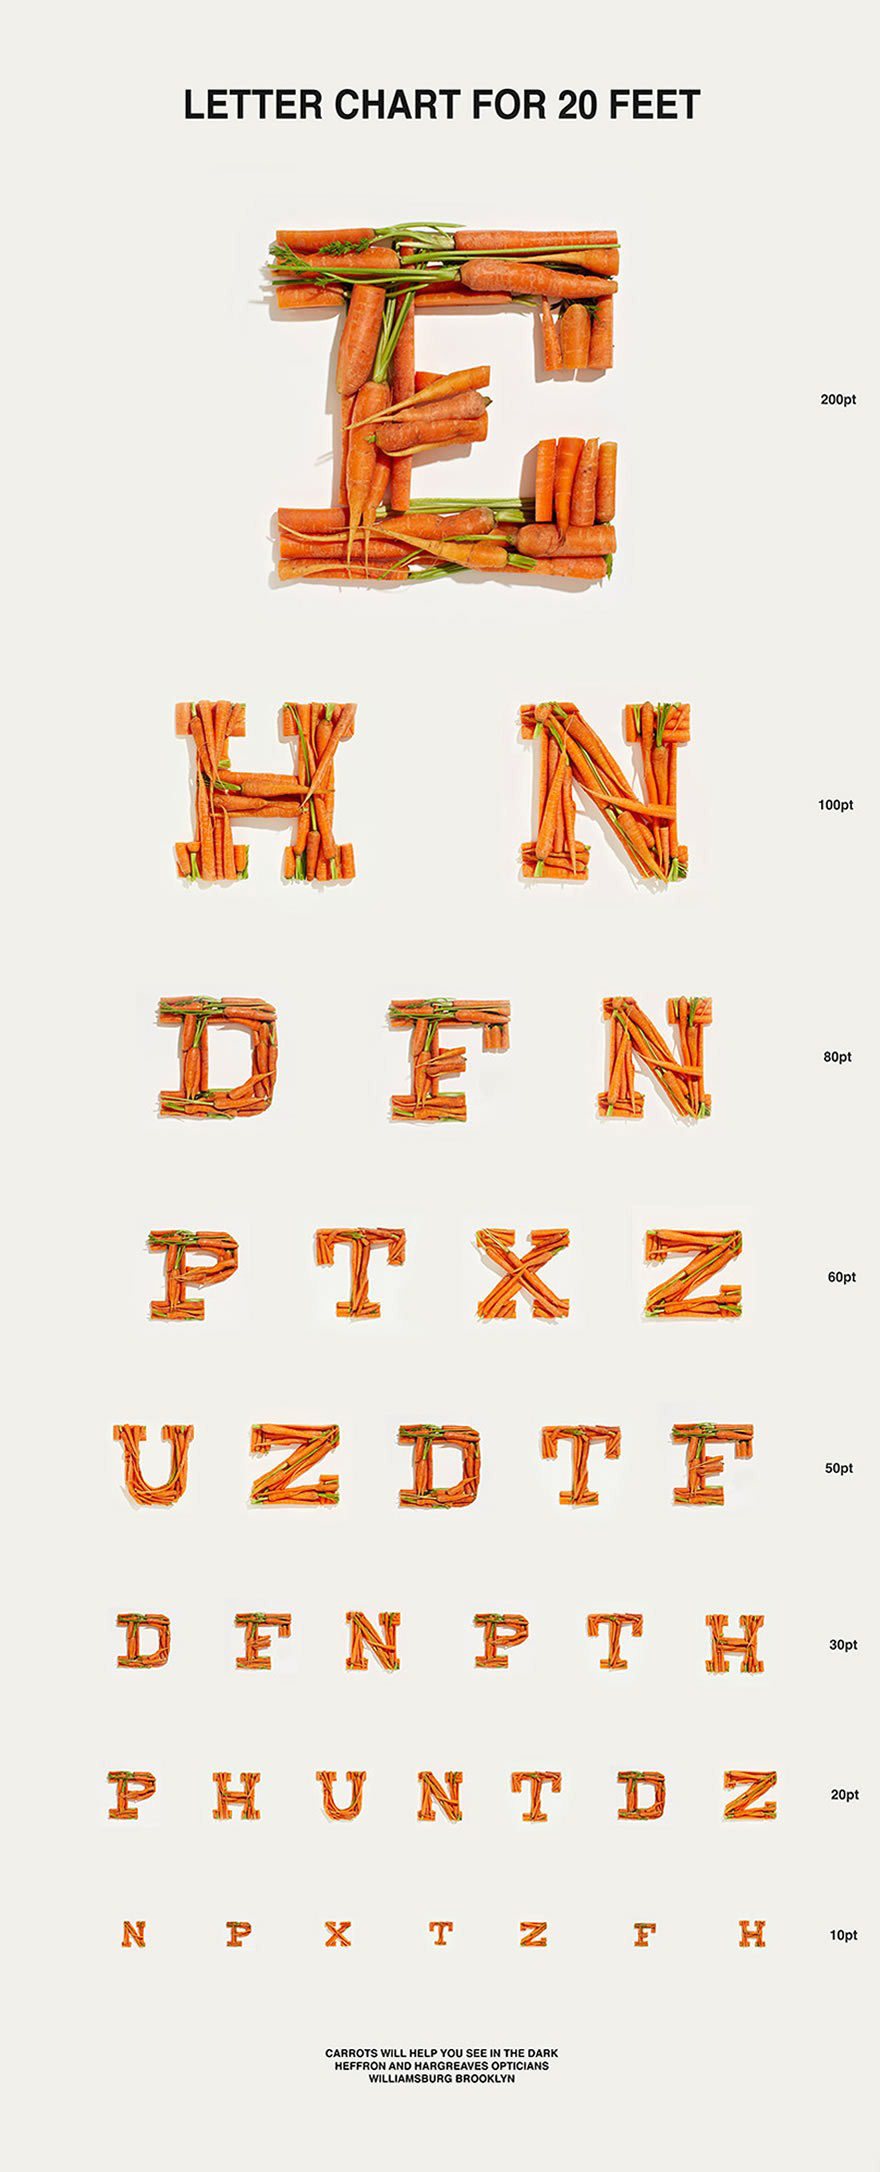 carrot-eye-chart-large-henry-hargreaves